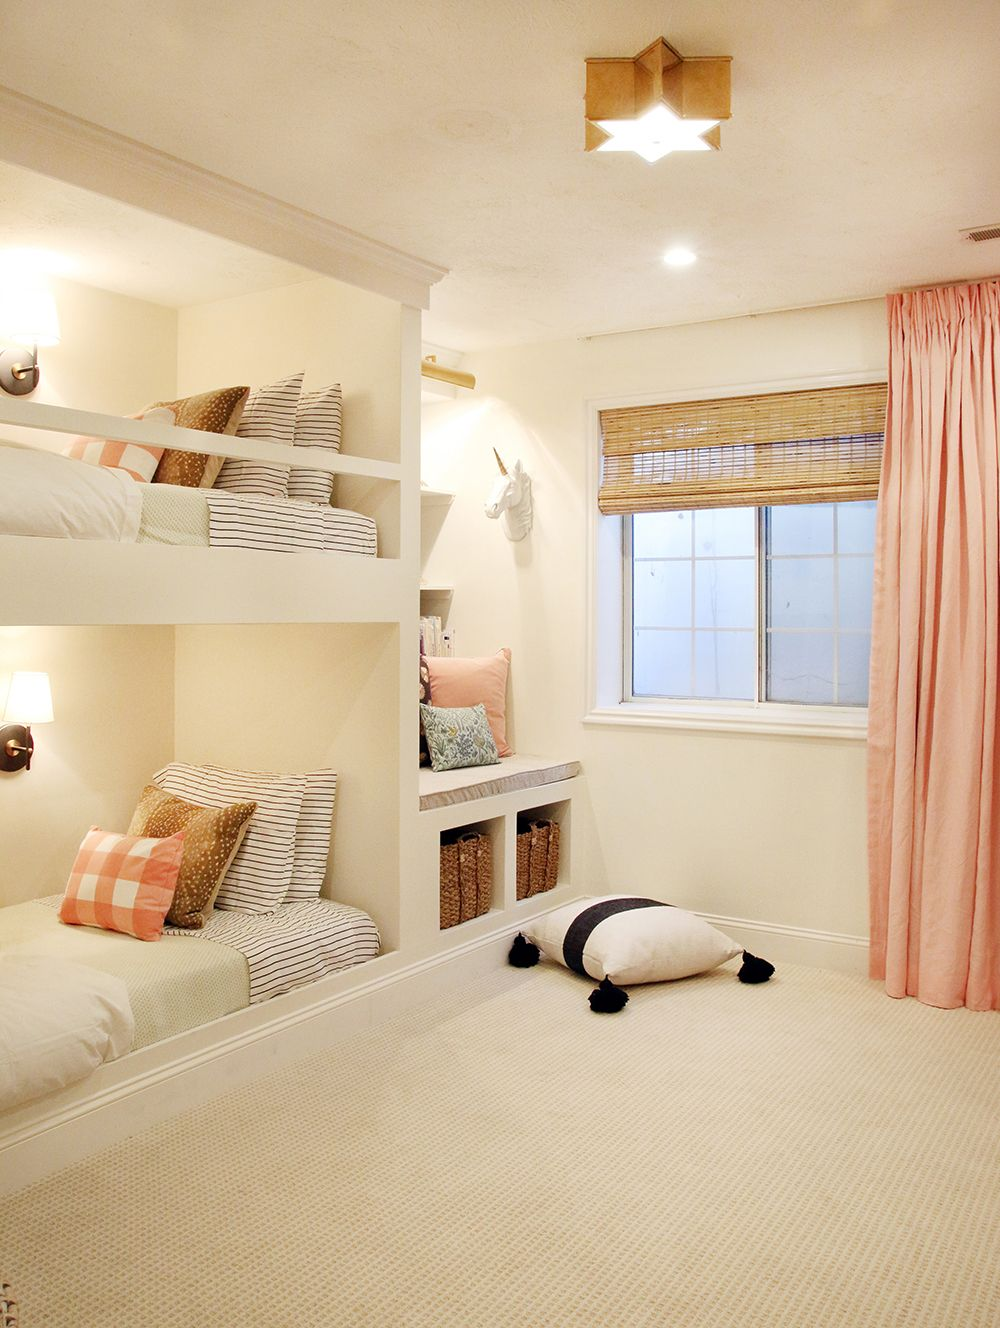 Modern Girls Bedroom: The Reveal! A Shared Girls' Room Complete With Built-In